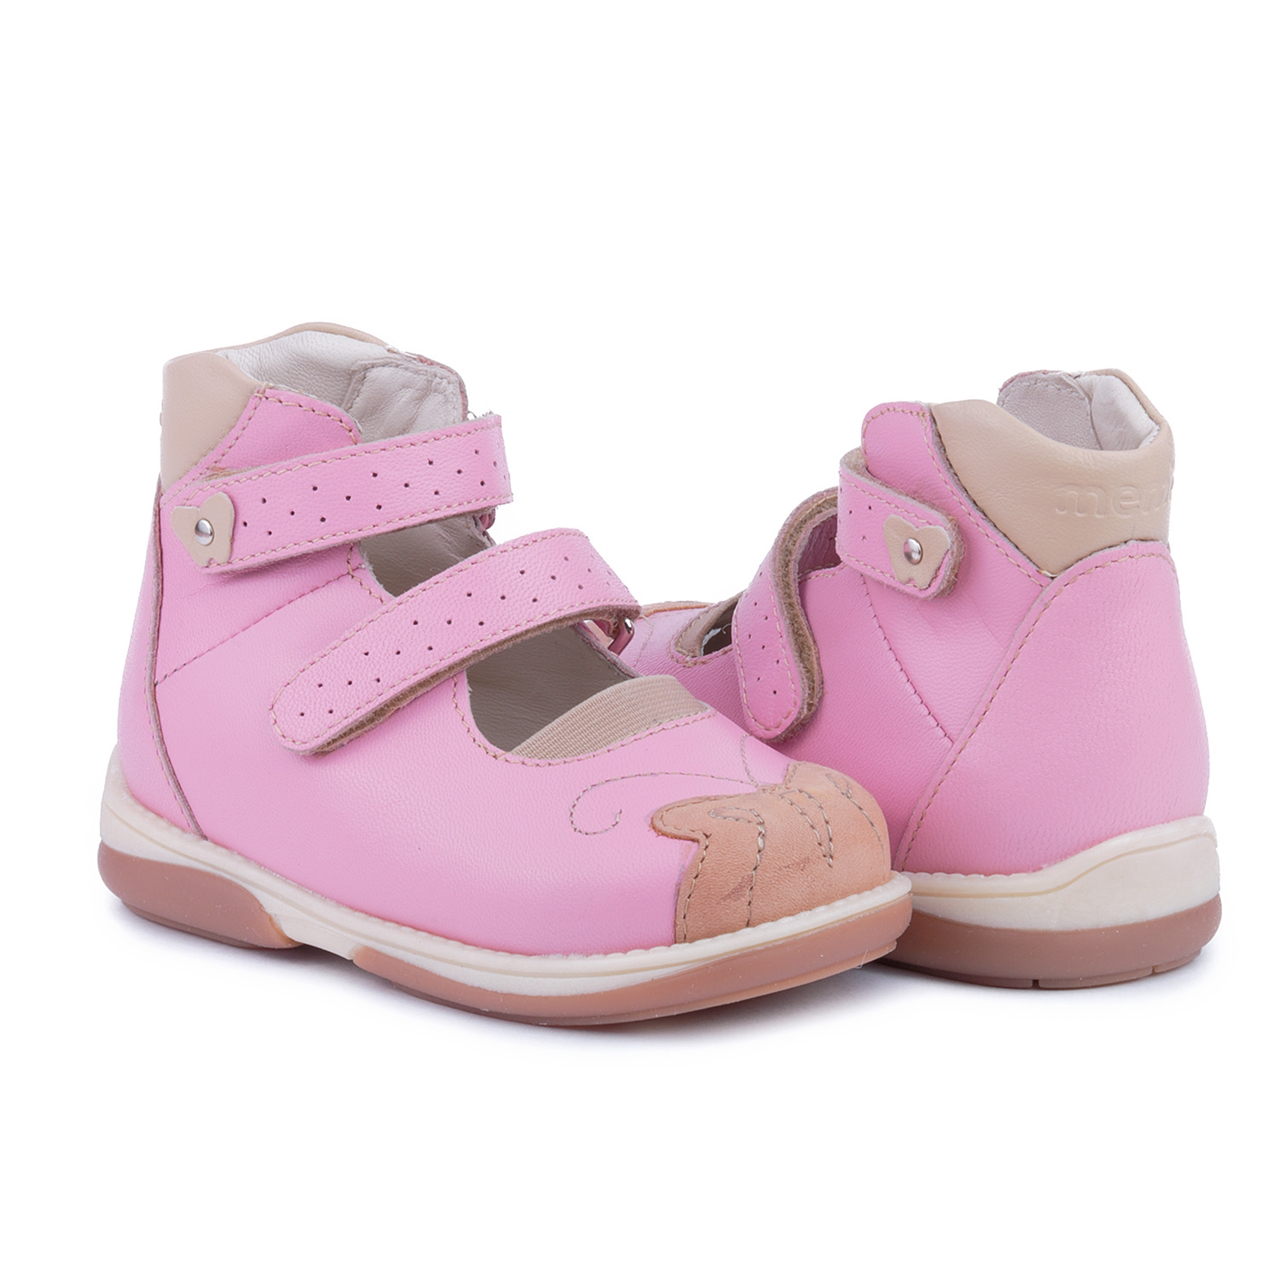 Toddler Shoes For Flat Feet